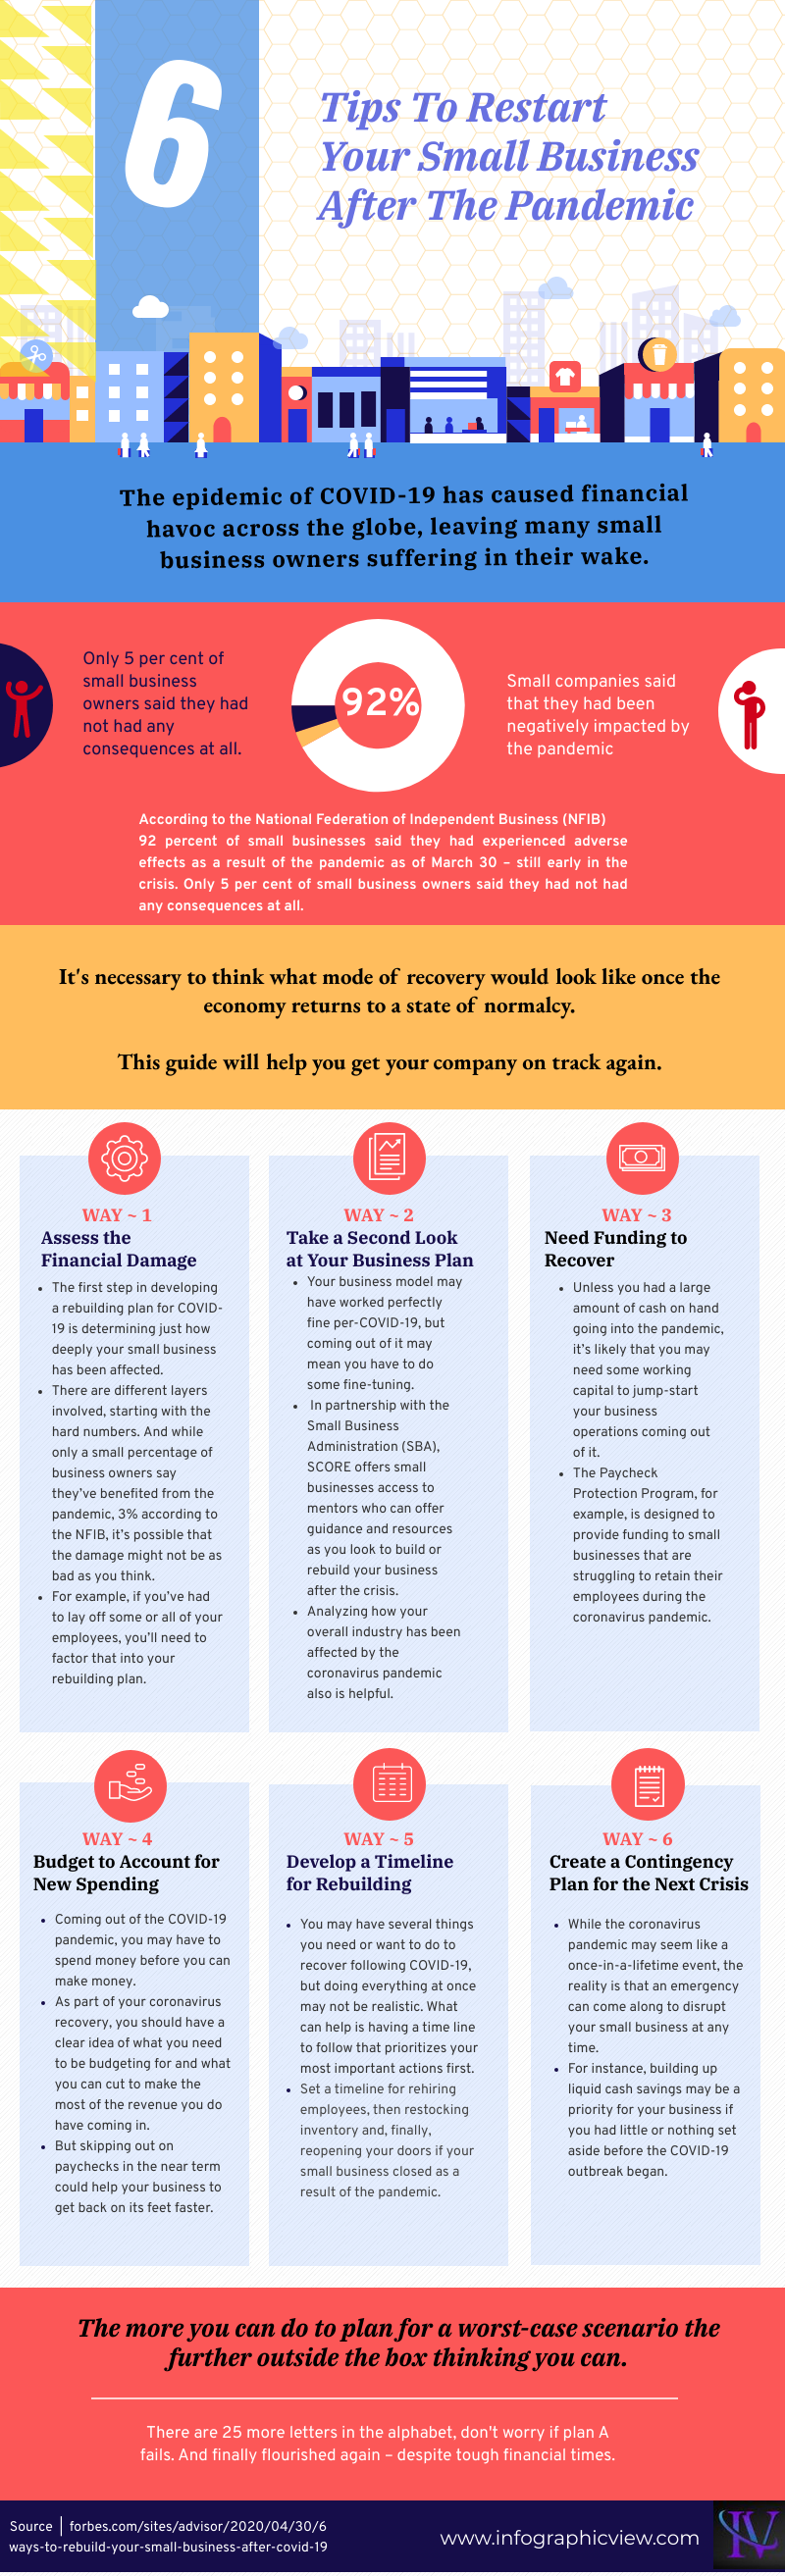 6 Tips To Restart Your Small Business After Pandemic #infographic